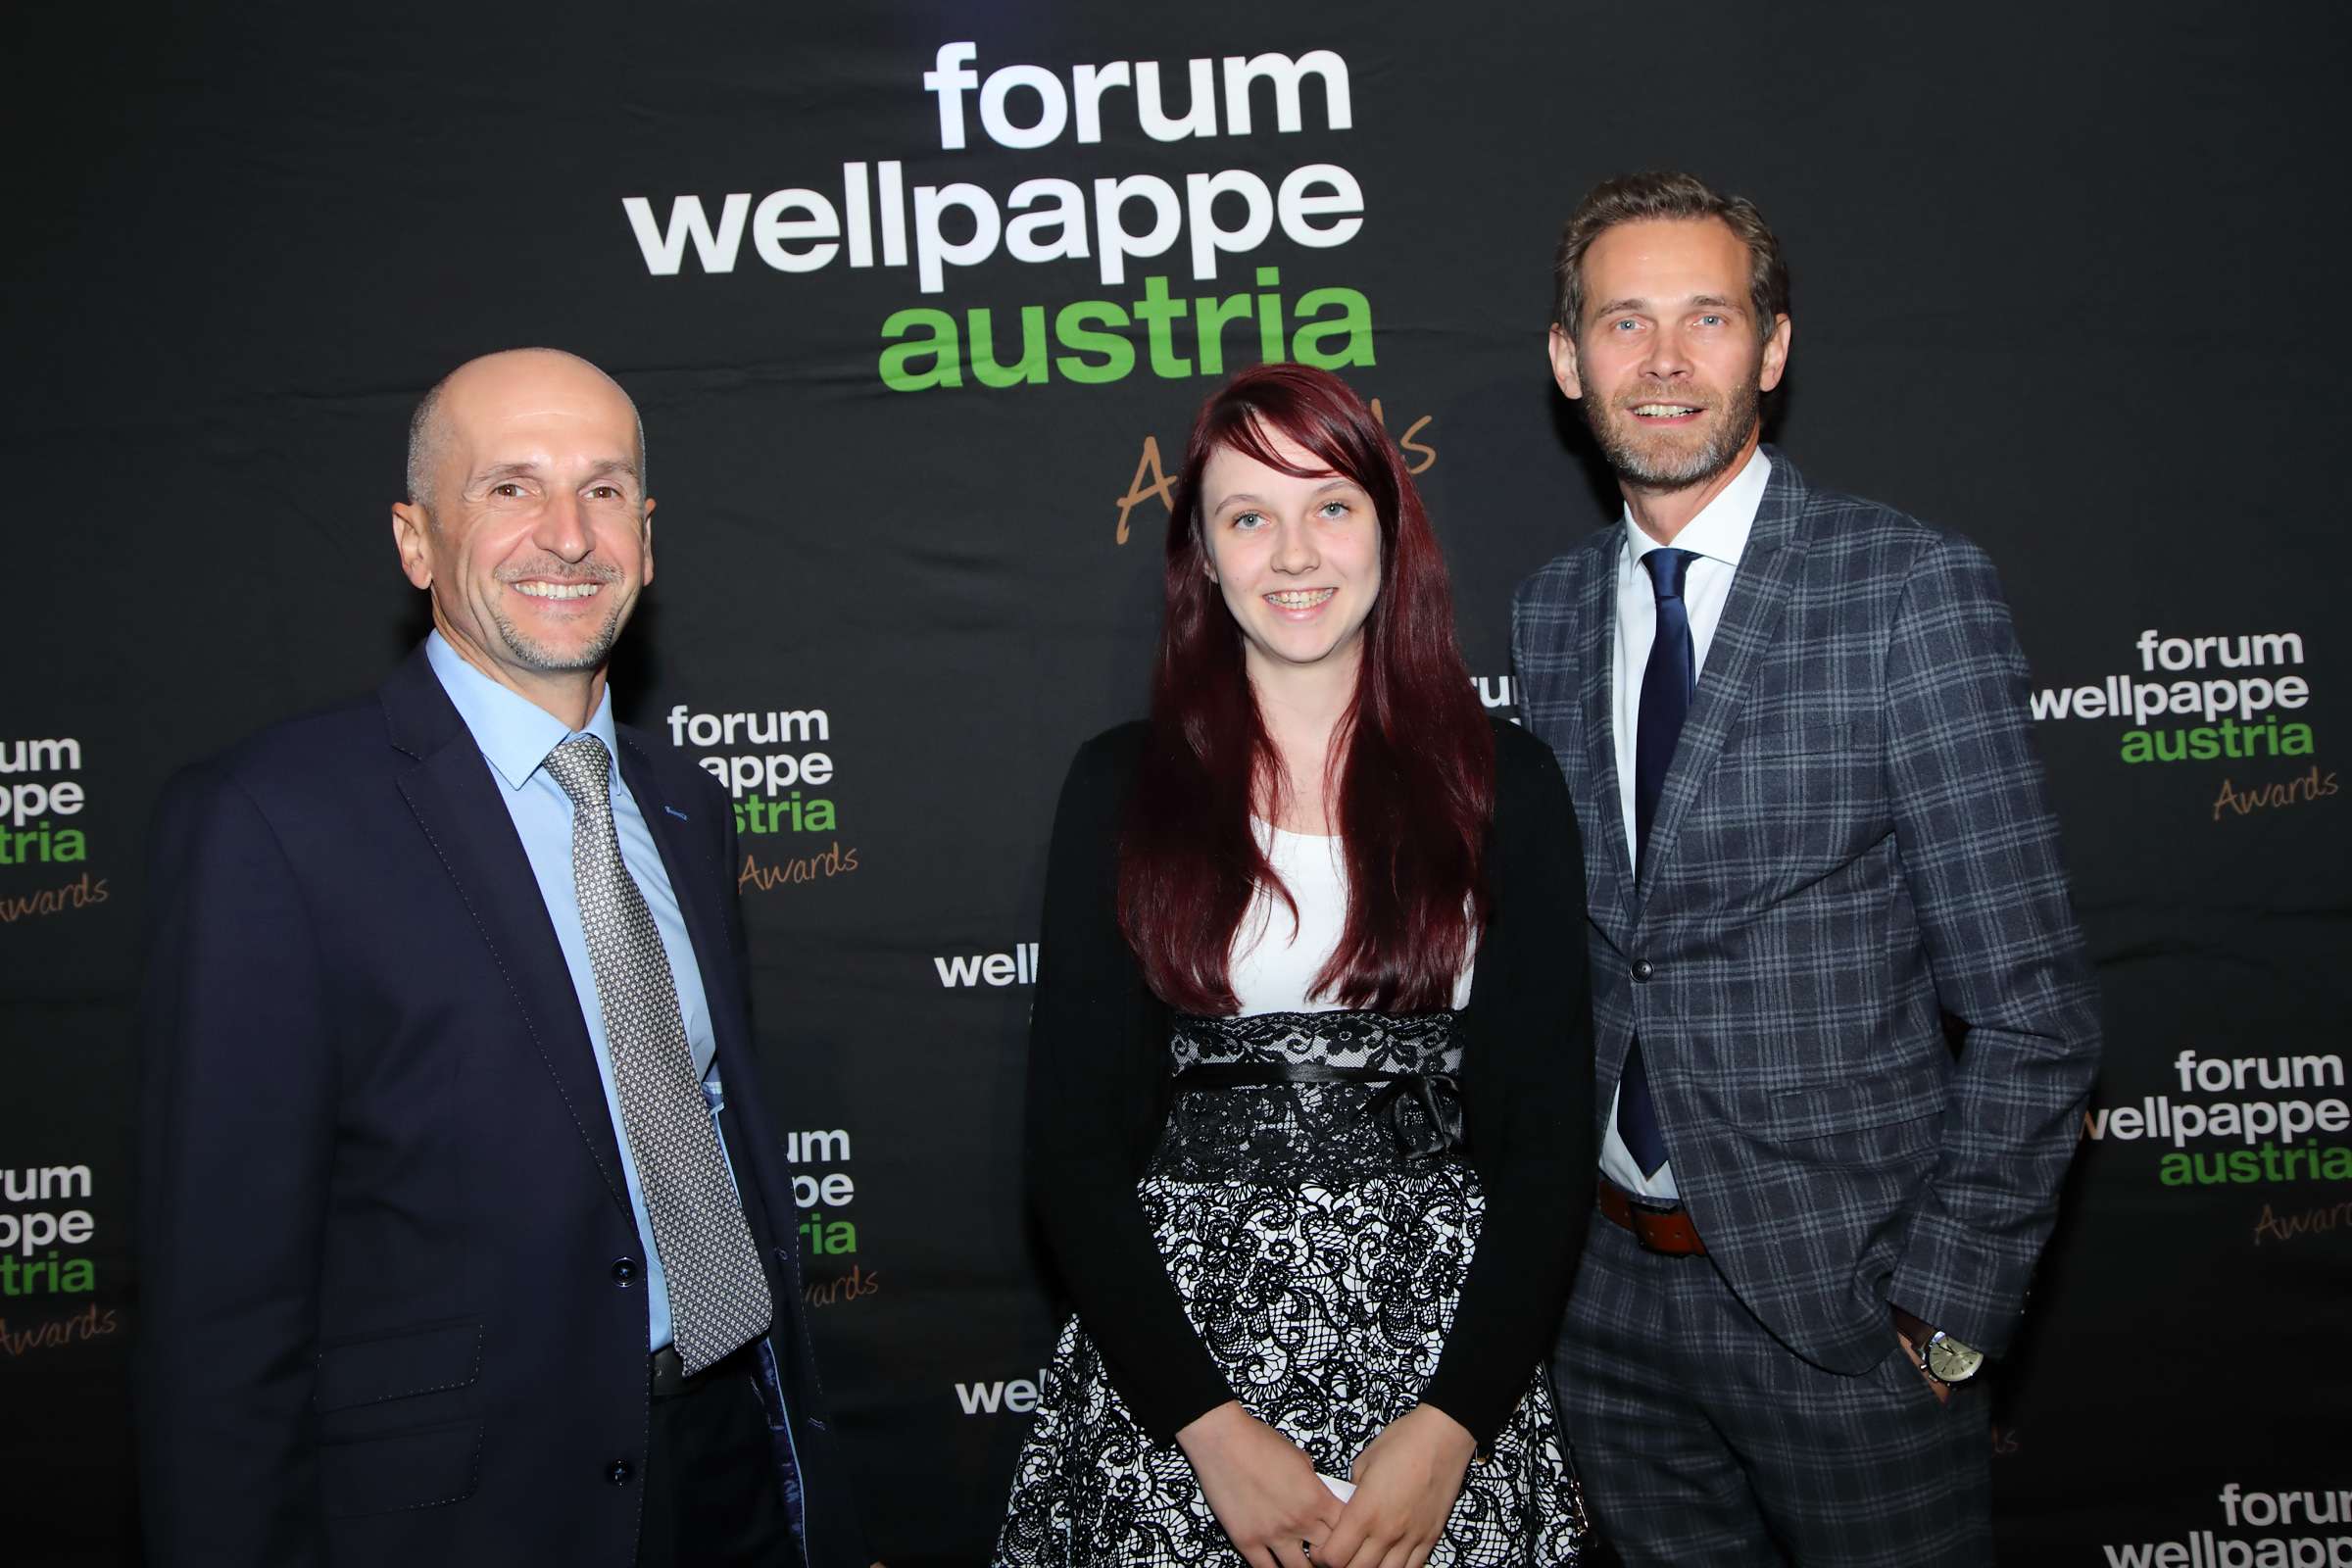 Wellpappe Austria Award 2018 © com_unit/L. Schedl